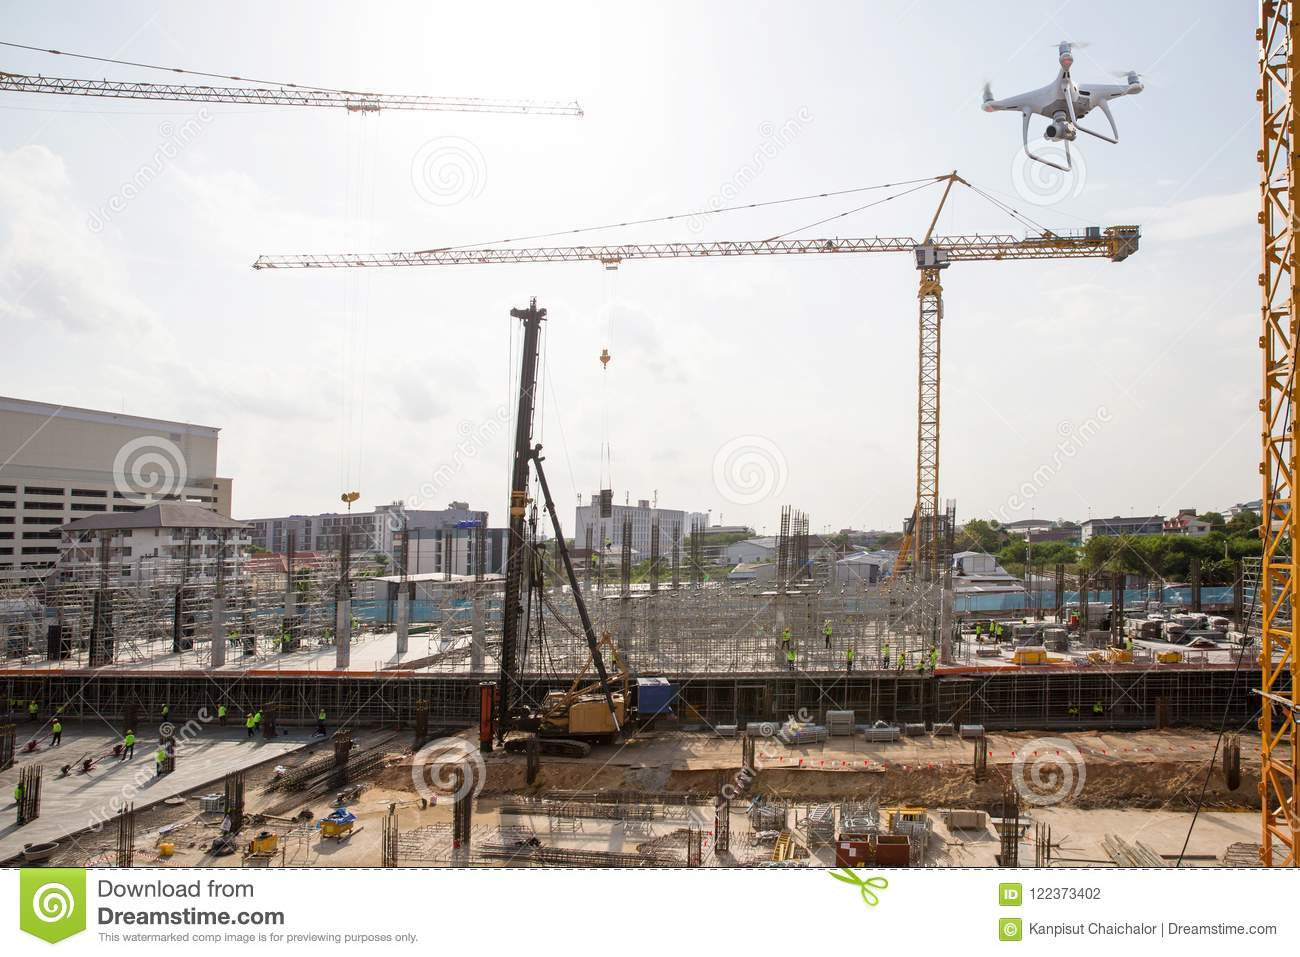 Drone Over Construction Site  Video Surveillance Or Industrial